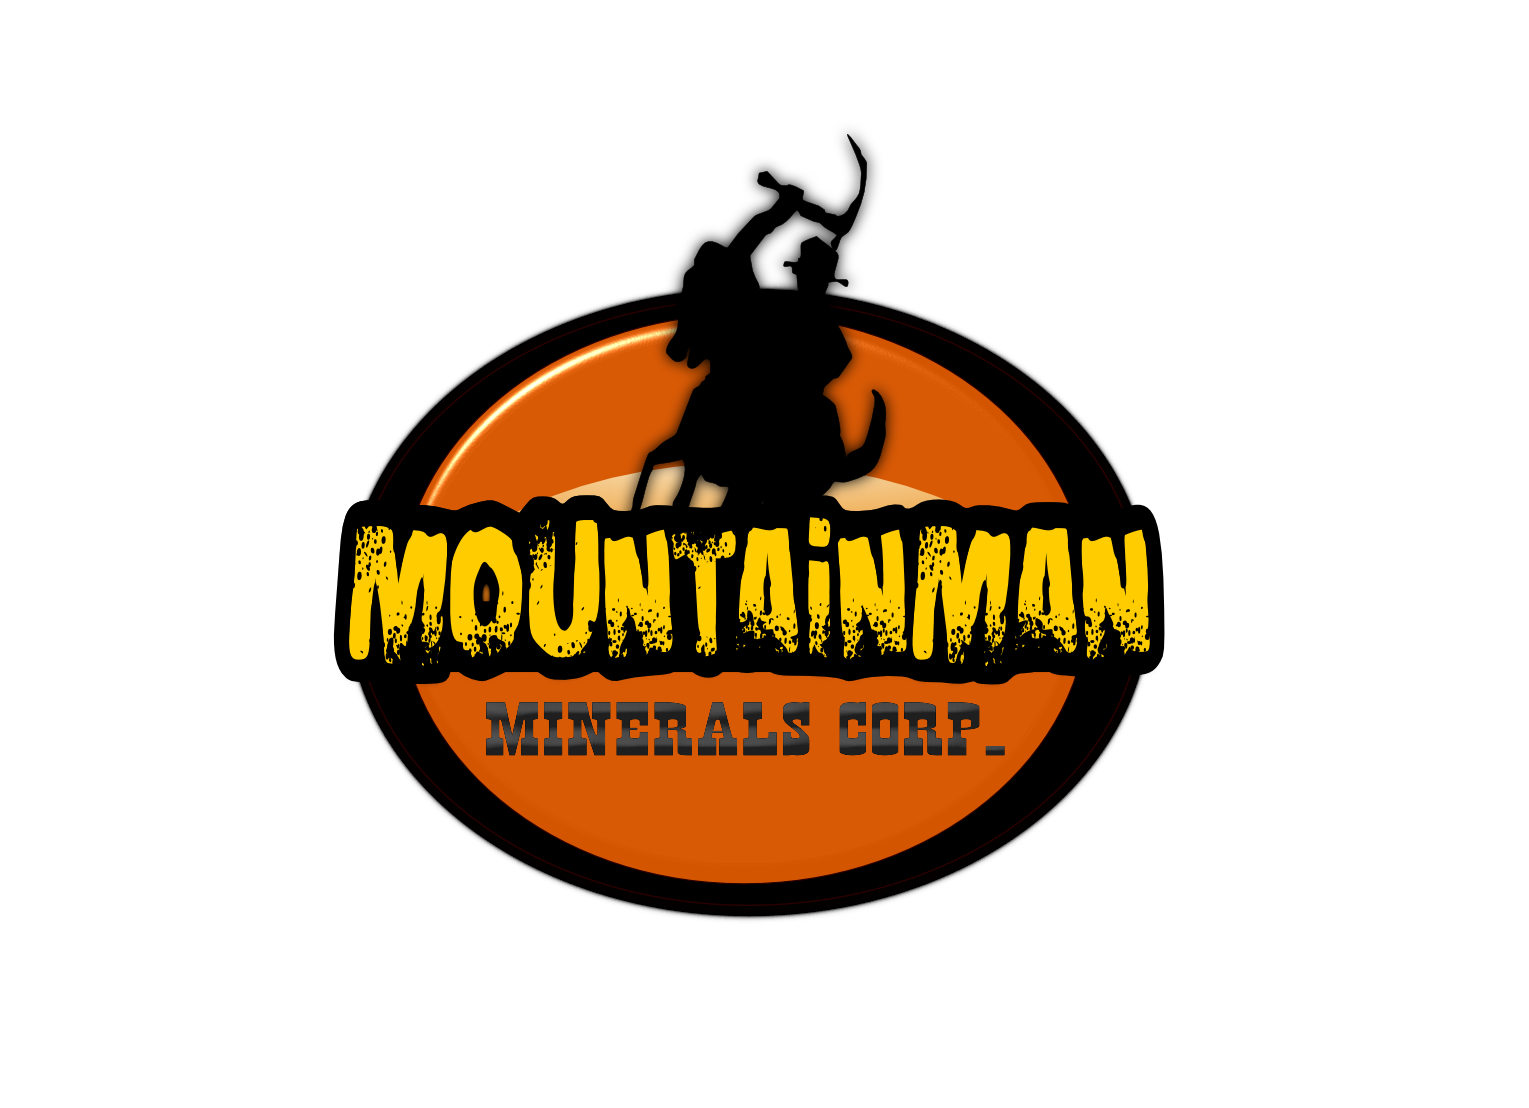 Logo Design by Joseph calunsag Cagaanan - Entry No. 16 in the Logo Design Contest Mountian Man Minerals Corp. Logo Design.